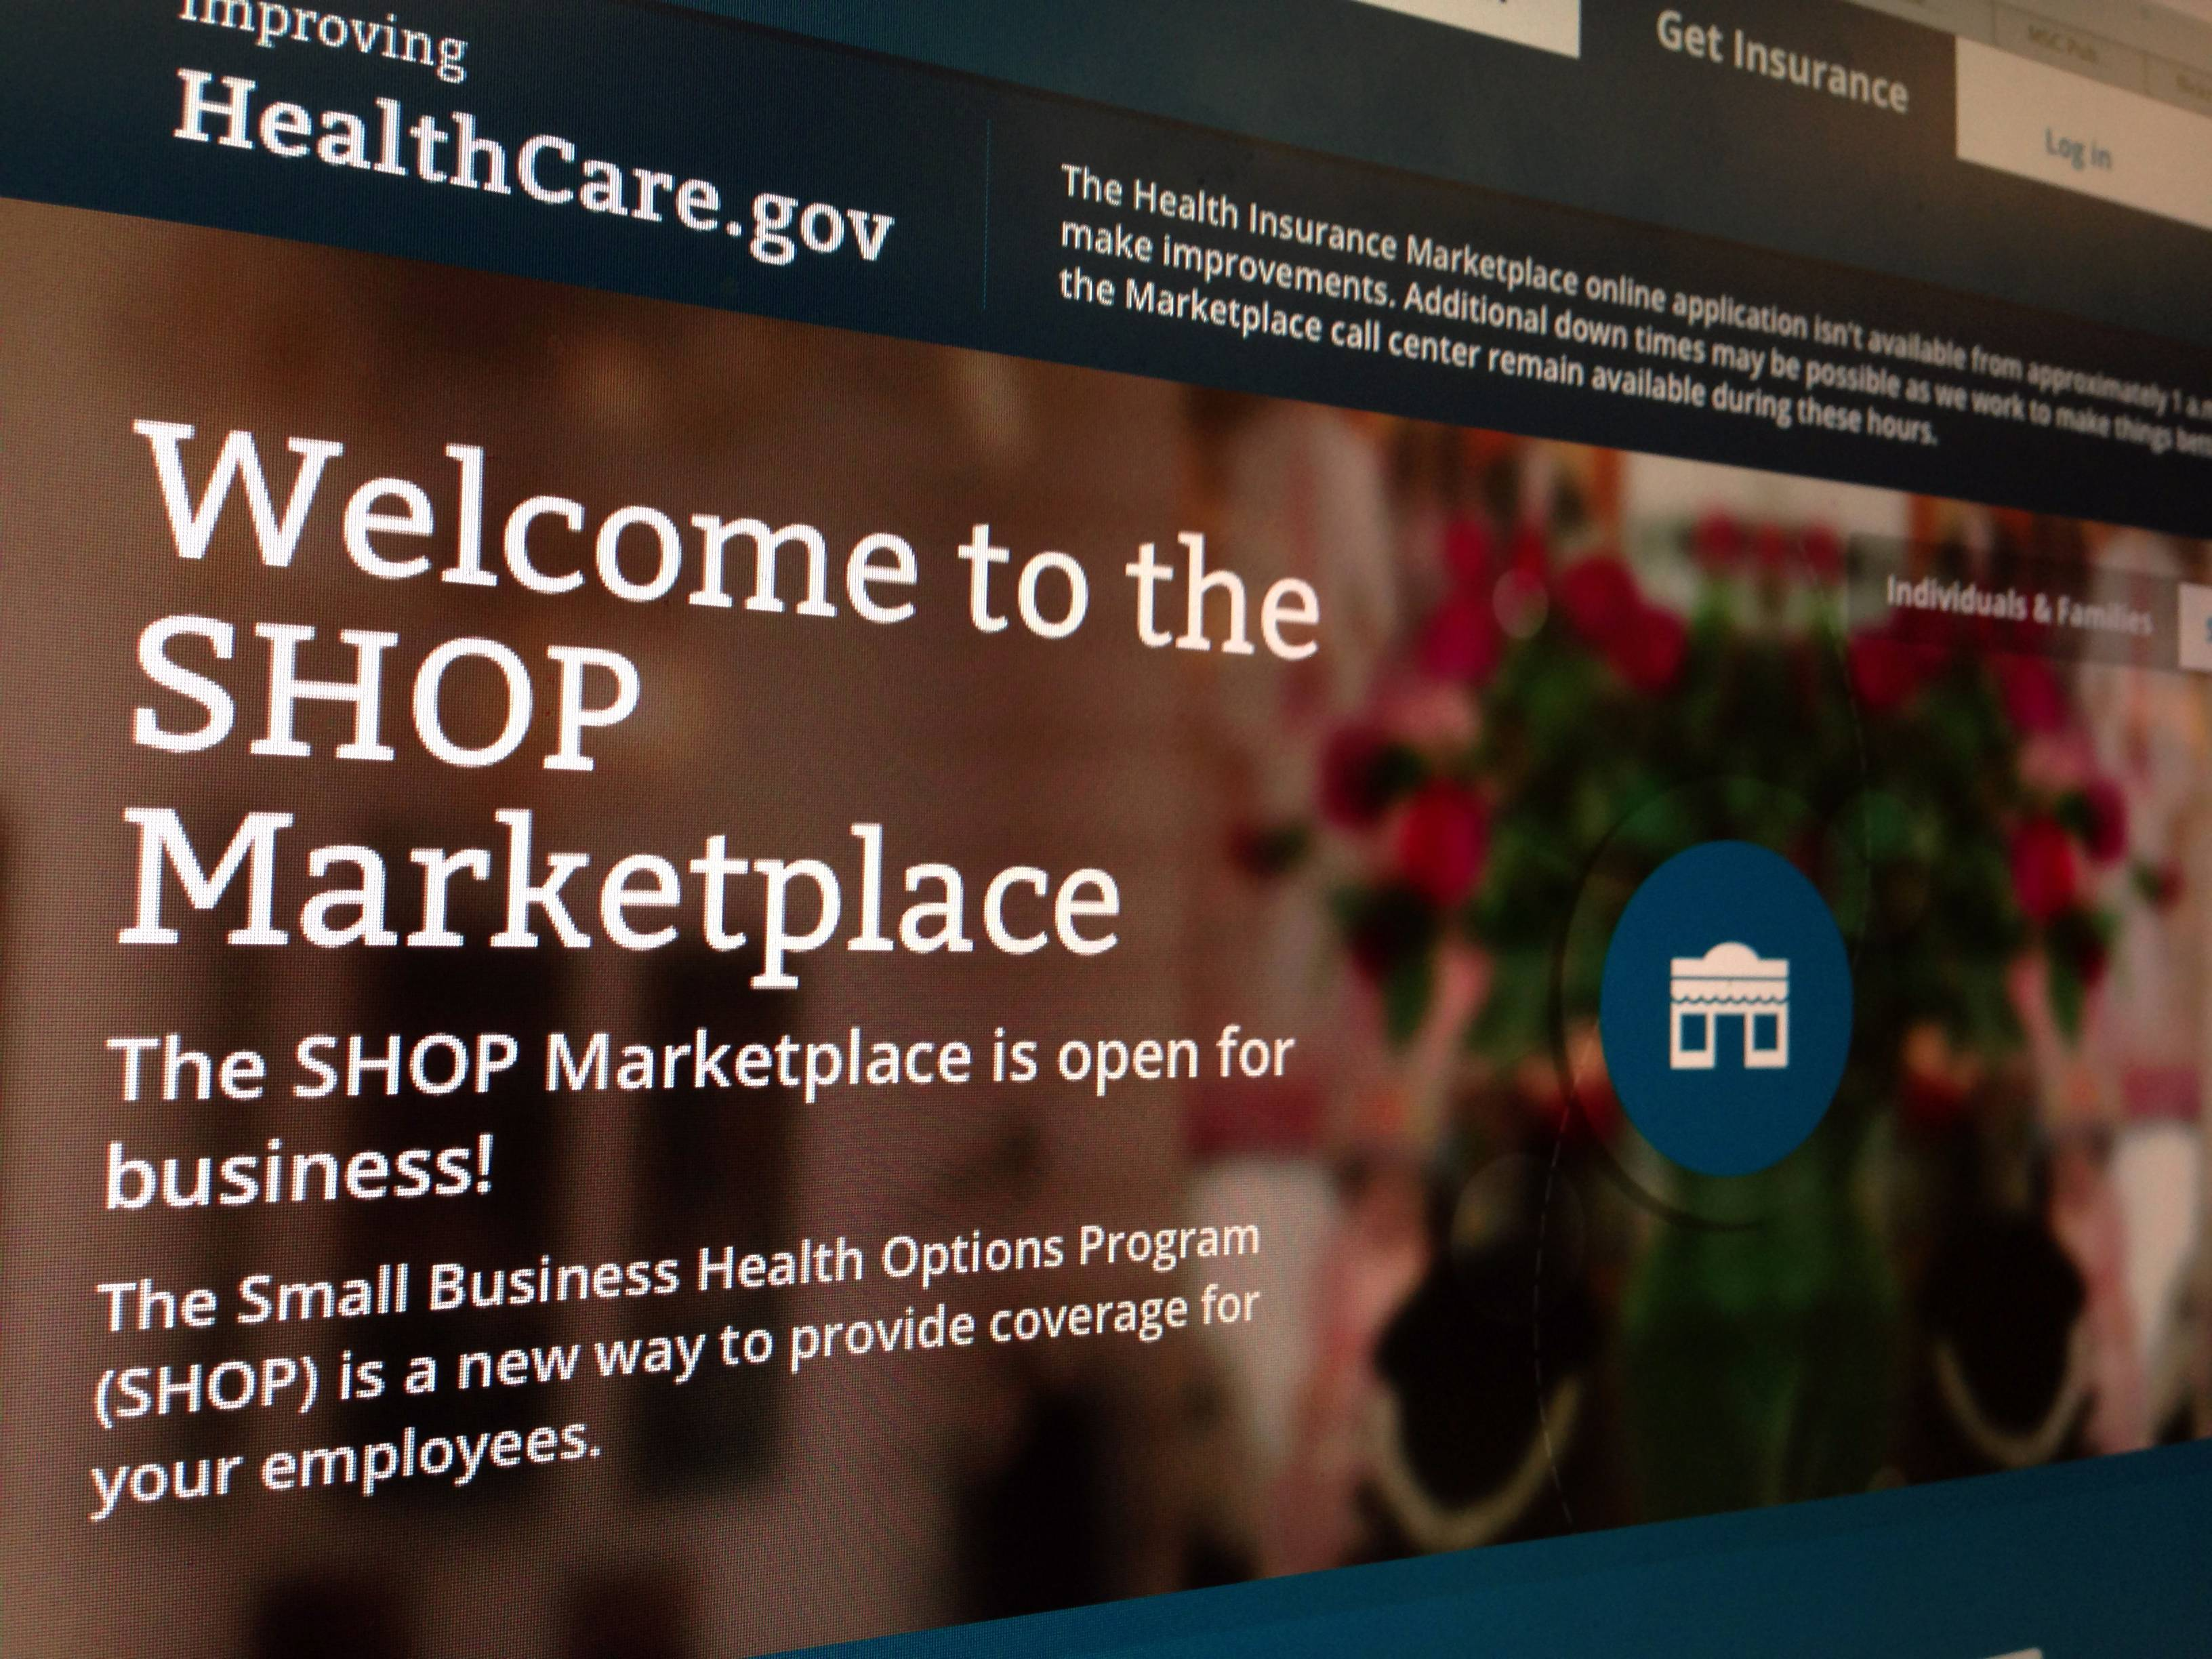 Part of the HealthCare.gov website page featuring information about the SHOP Marketplace in Washington.